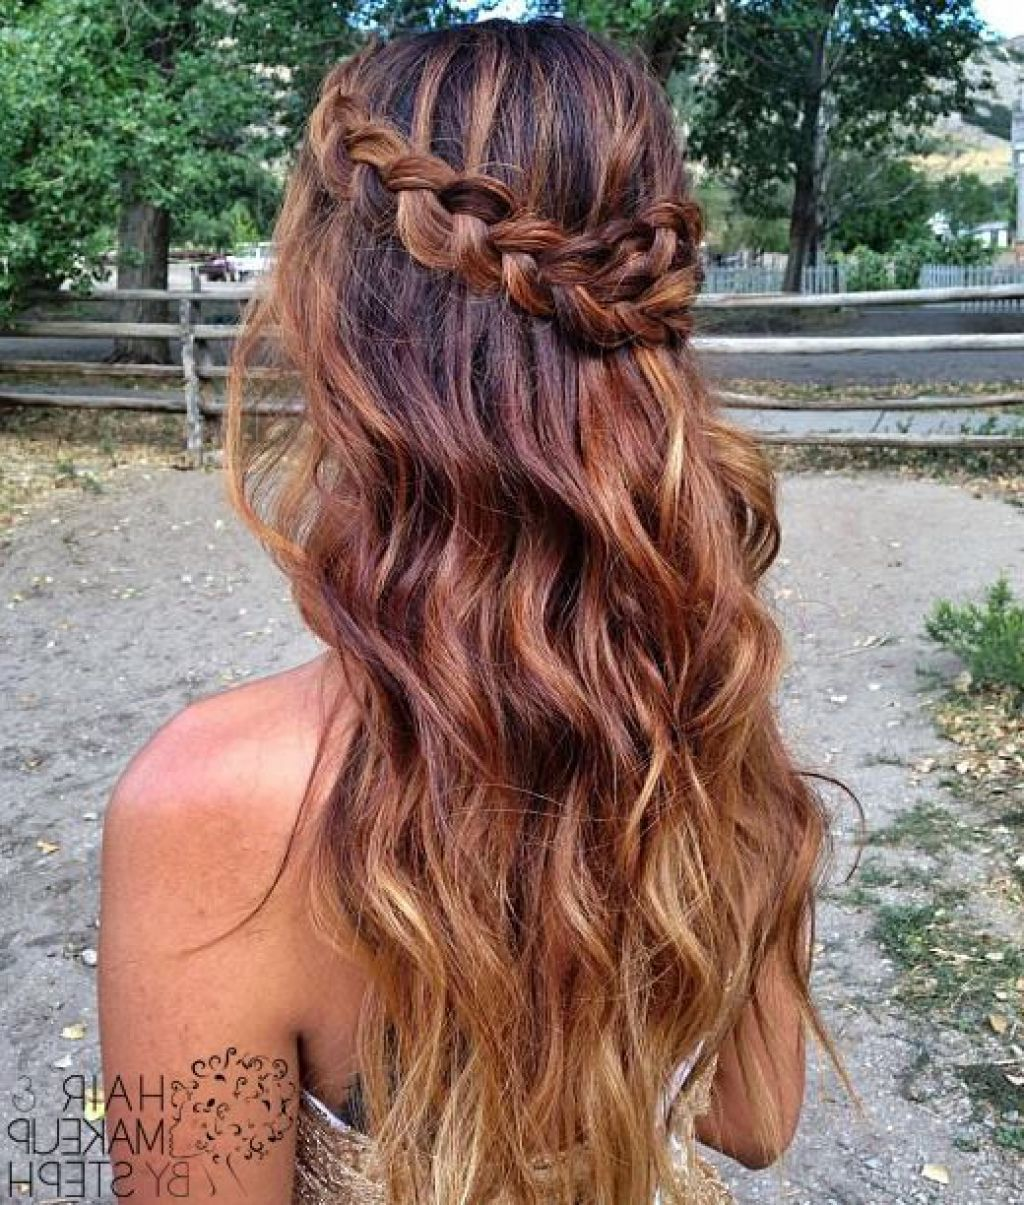 Half up half down prom hairstyles hairstyle prom pinterest